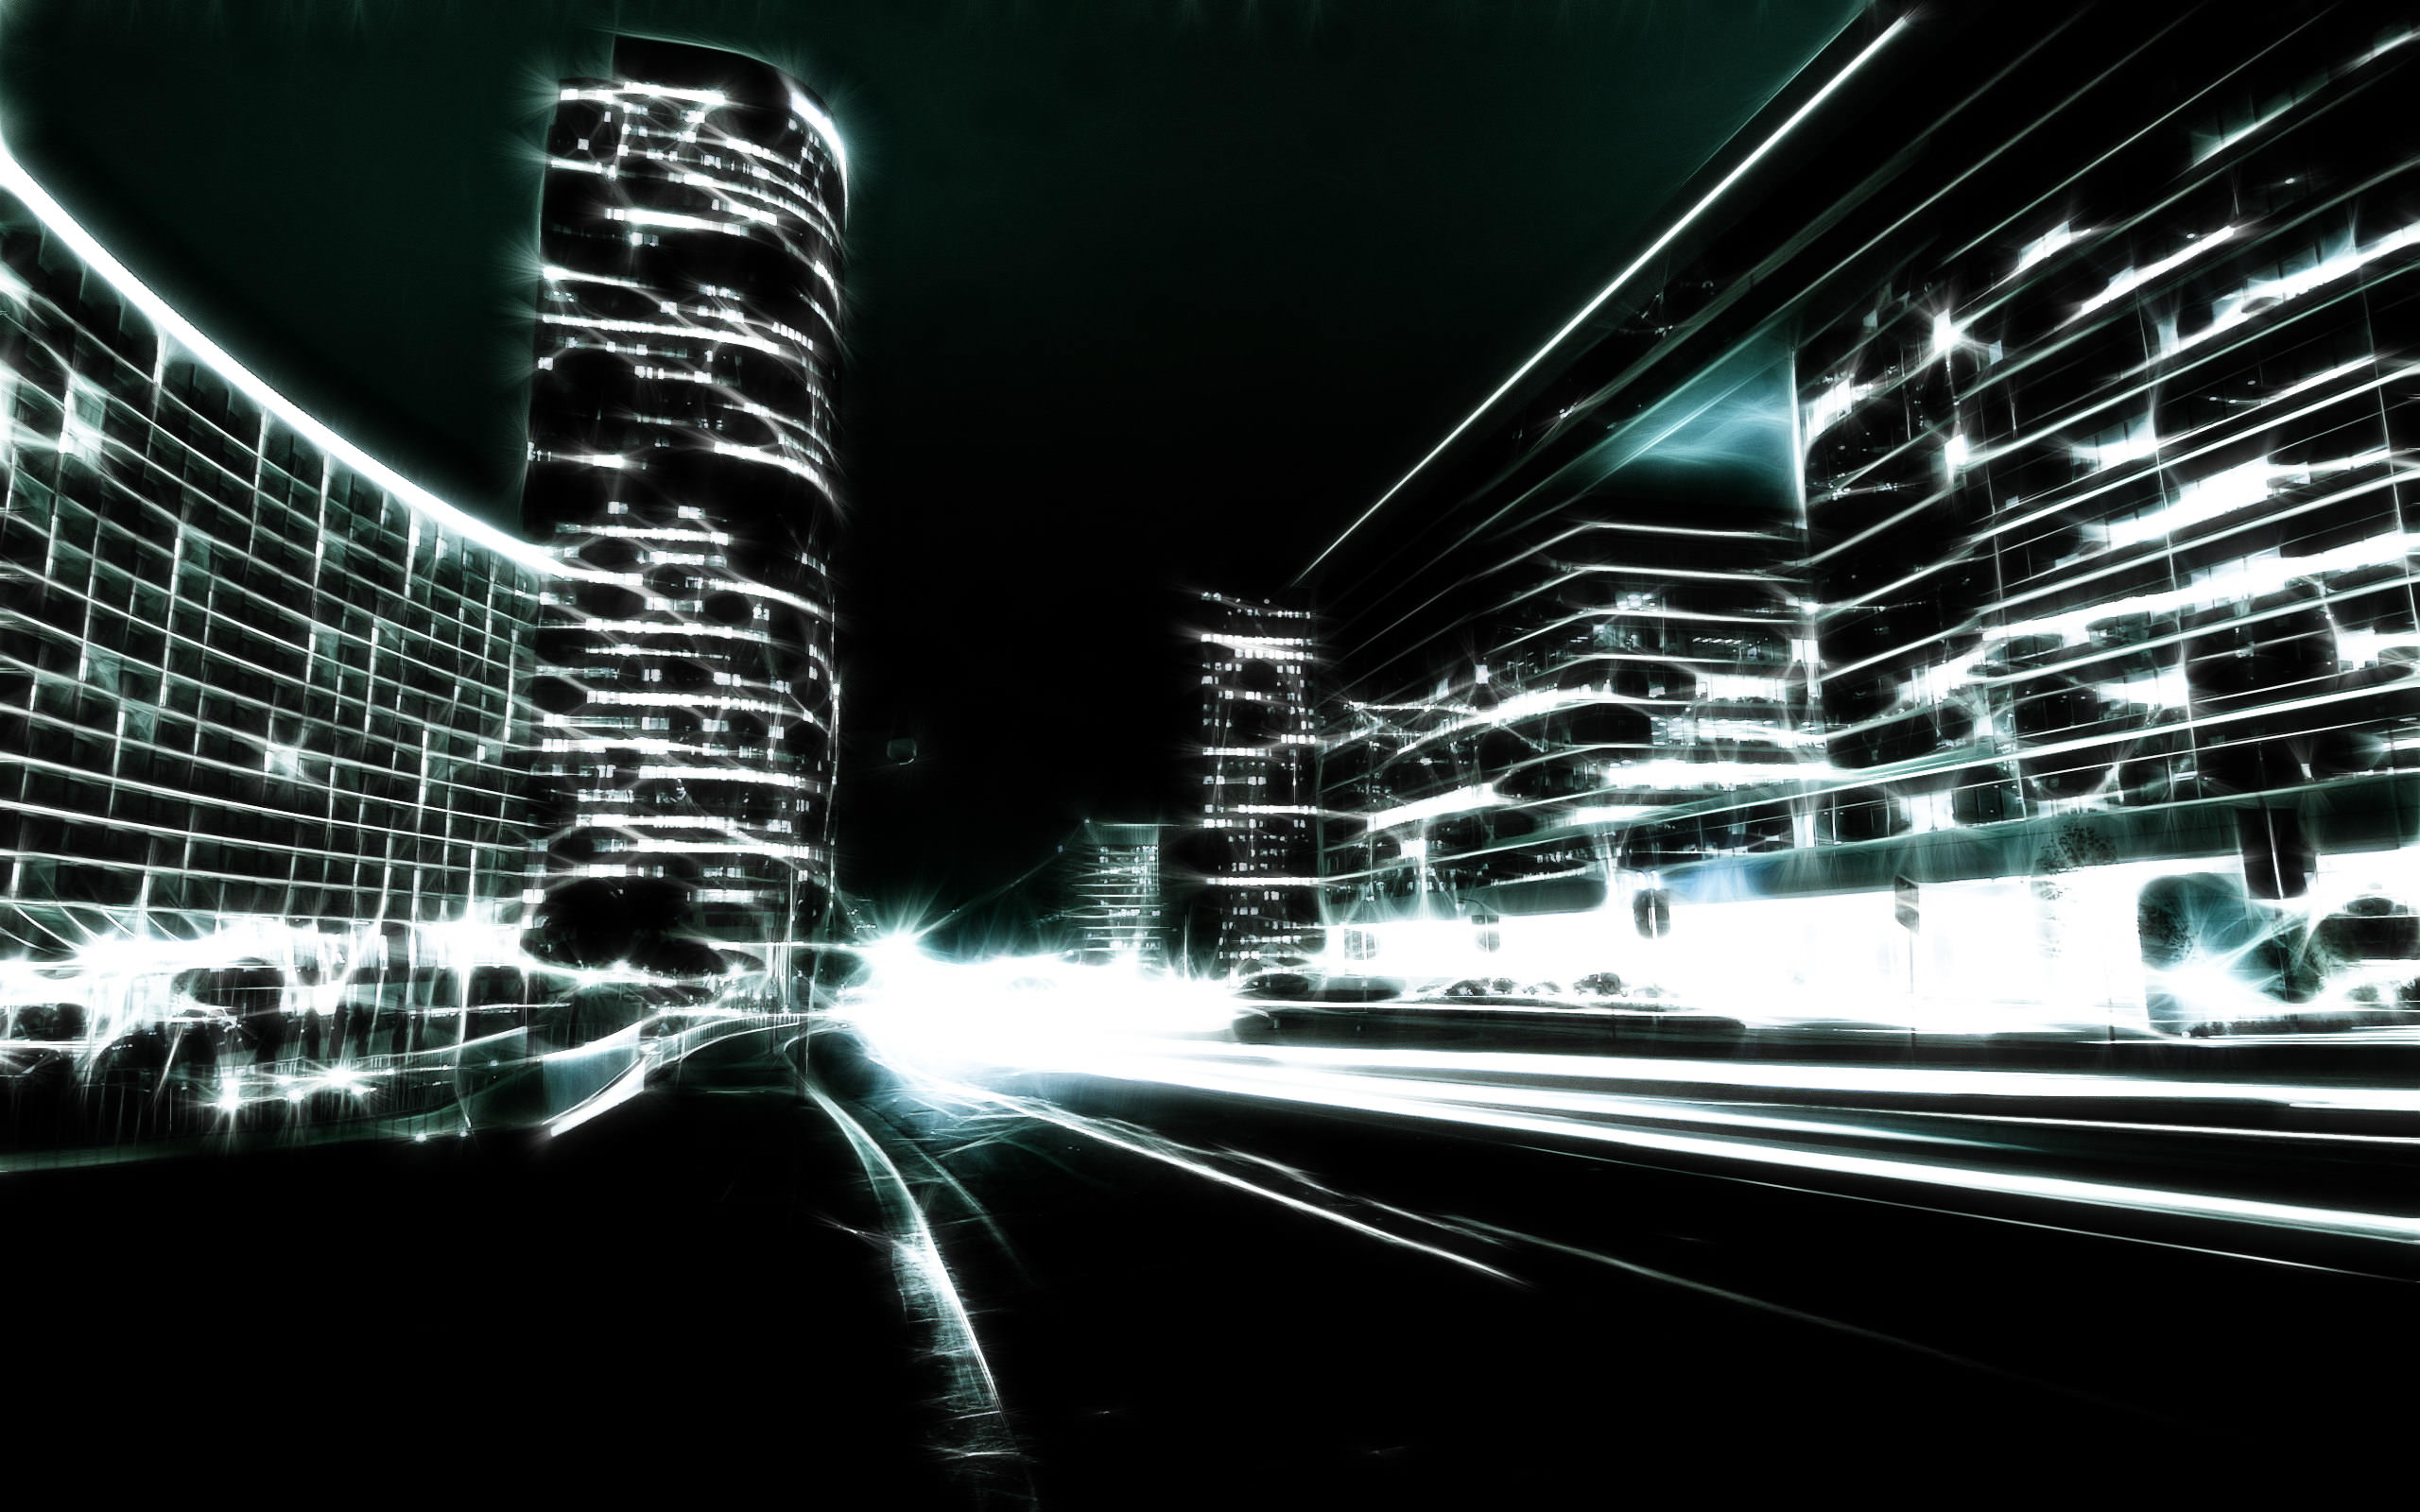 Digital Art hd Dark Cityscape Wallpaper